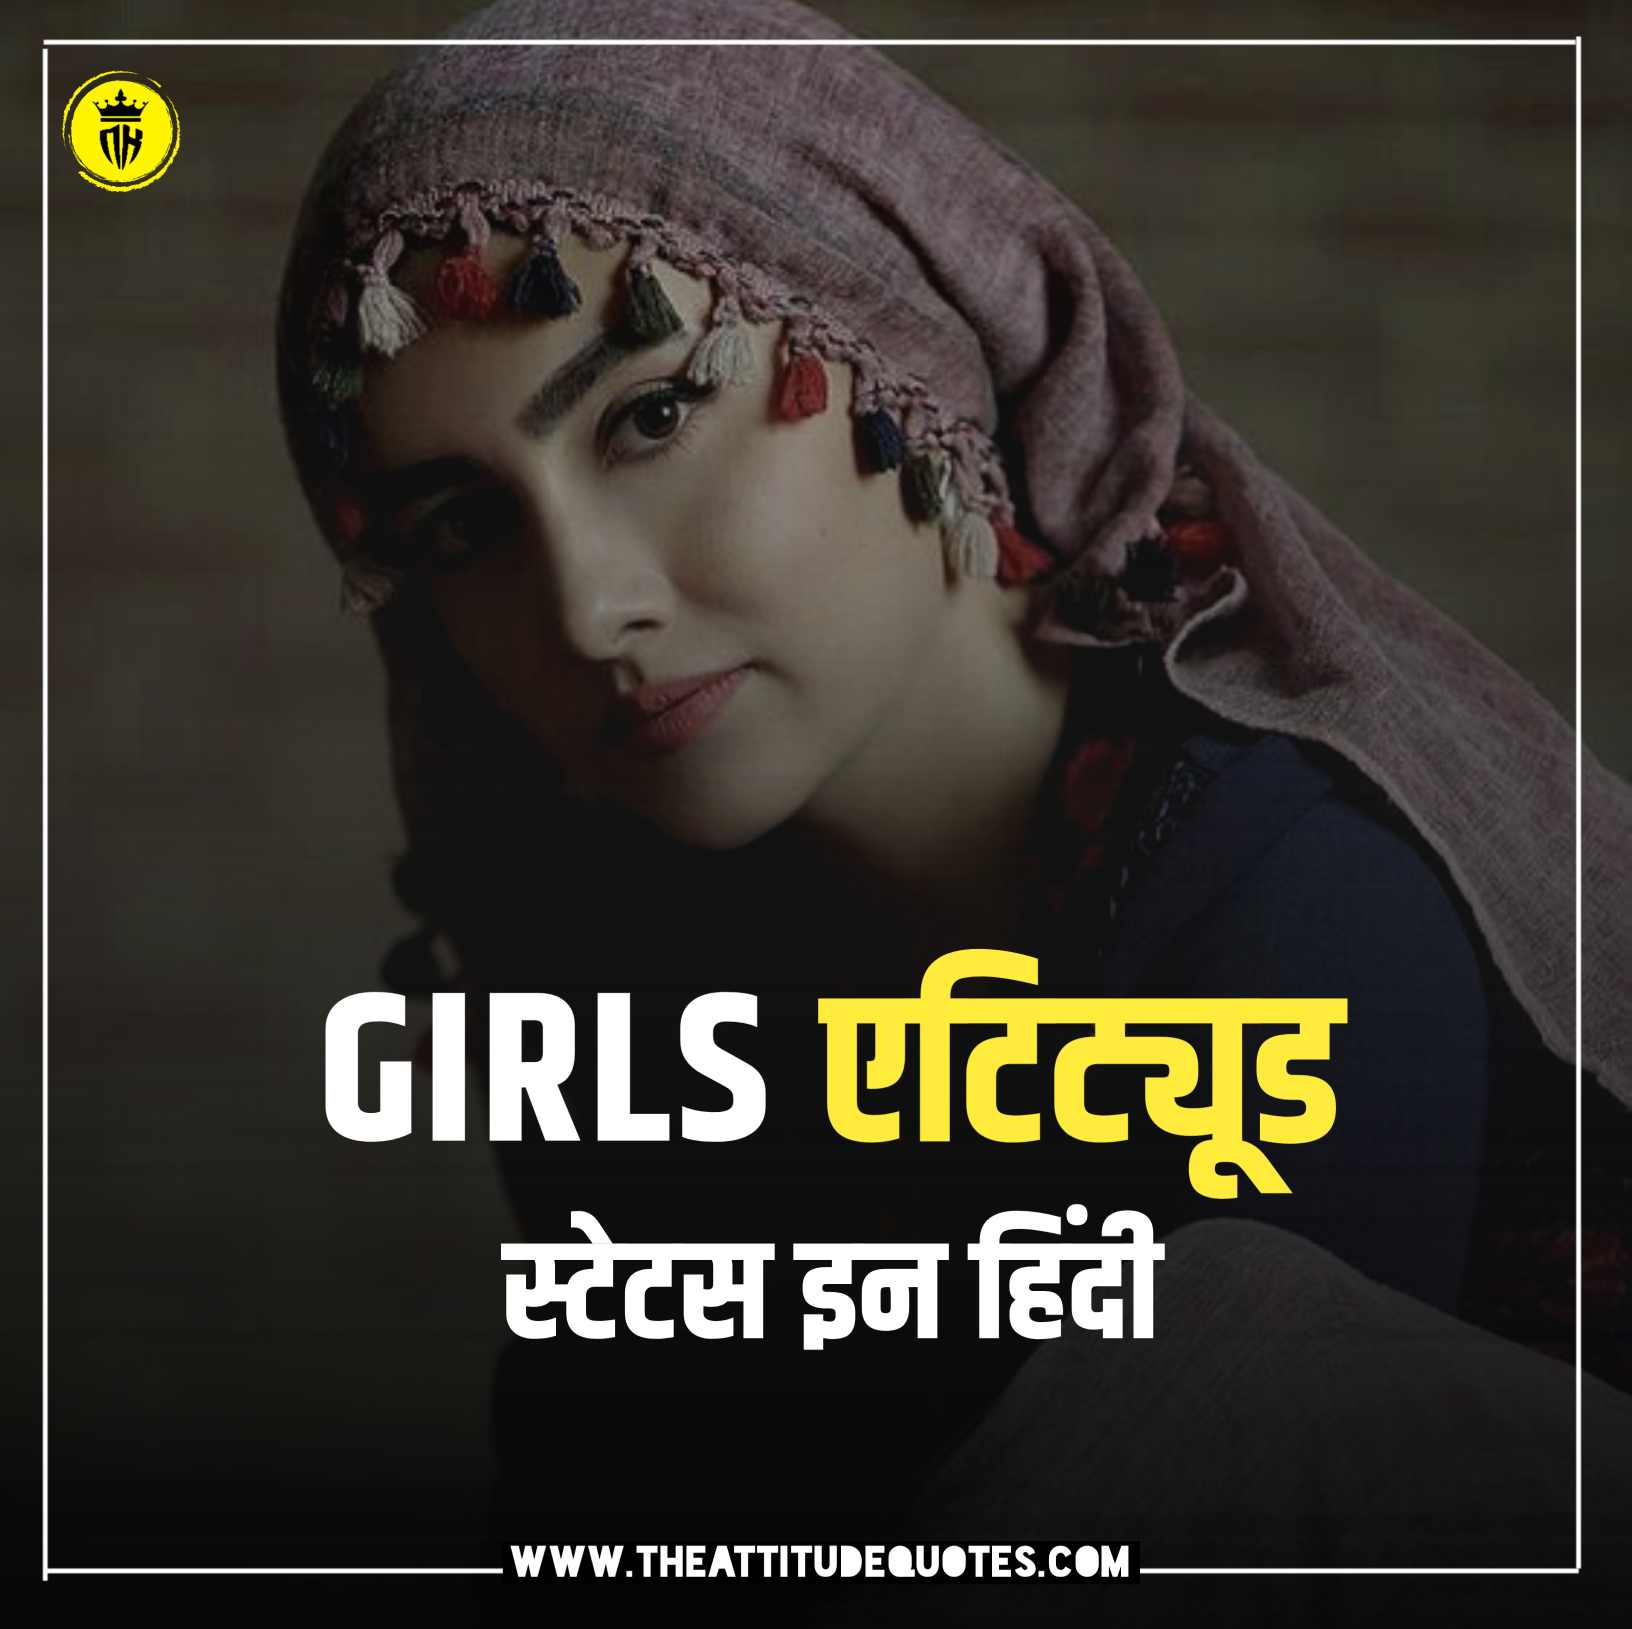 Girls Attitude Quotes In Hindi, Attitude Status For Girl In Hindi For Instagram, attitude caption in hindi for girl, captions for girls in hindi, instagram status in hindi for girl, attitude caption for instagram for girl in hindi, caption in hindi for girls, cute captions for girls in hindi, beautiful quotes for girls in hindi, captions for instagram for girls in hindi, captions for girls hindi, baby smile quotes in hindi, strong girl quotes in hindi, girl quotes about life in hindi, caption for instagram in hindi for girl, instagram captions for girls hindi, happy girl quotes in hindi, hindi captions for instagram for girls, attitude captions for girls in hindi, best quotes for girls in hindi, Caption For Girls In Hindi, Hindi Caption For Girls, Attitude Caption For Girls In Hindi, Instagram Captions For Girls In Hindi, love quotes for girls in hindi, love caption for girls in hindi, fb caption for girls in hindi, hindi captions for instagram in english for girl, caption for rajput girl in hindi, status for girl in hindi for instagram , girl smile quotes in hindi, best quotes for girls hindi, sassy quotes in hindi , caption for fb dp in hindi for girl, instagram captions in hindi for girls, girls hindi caption